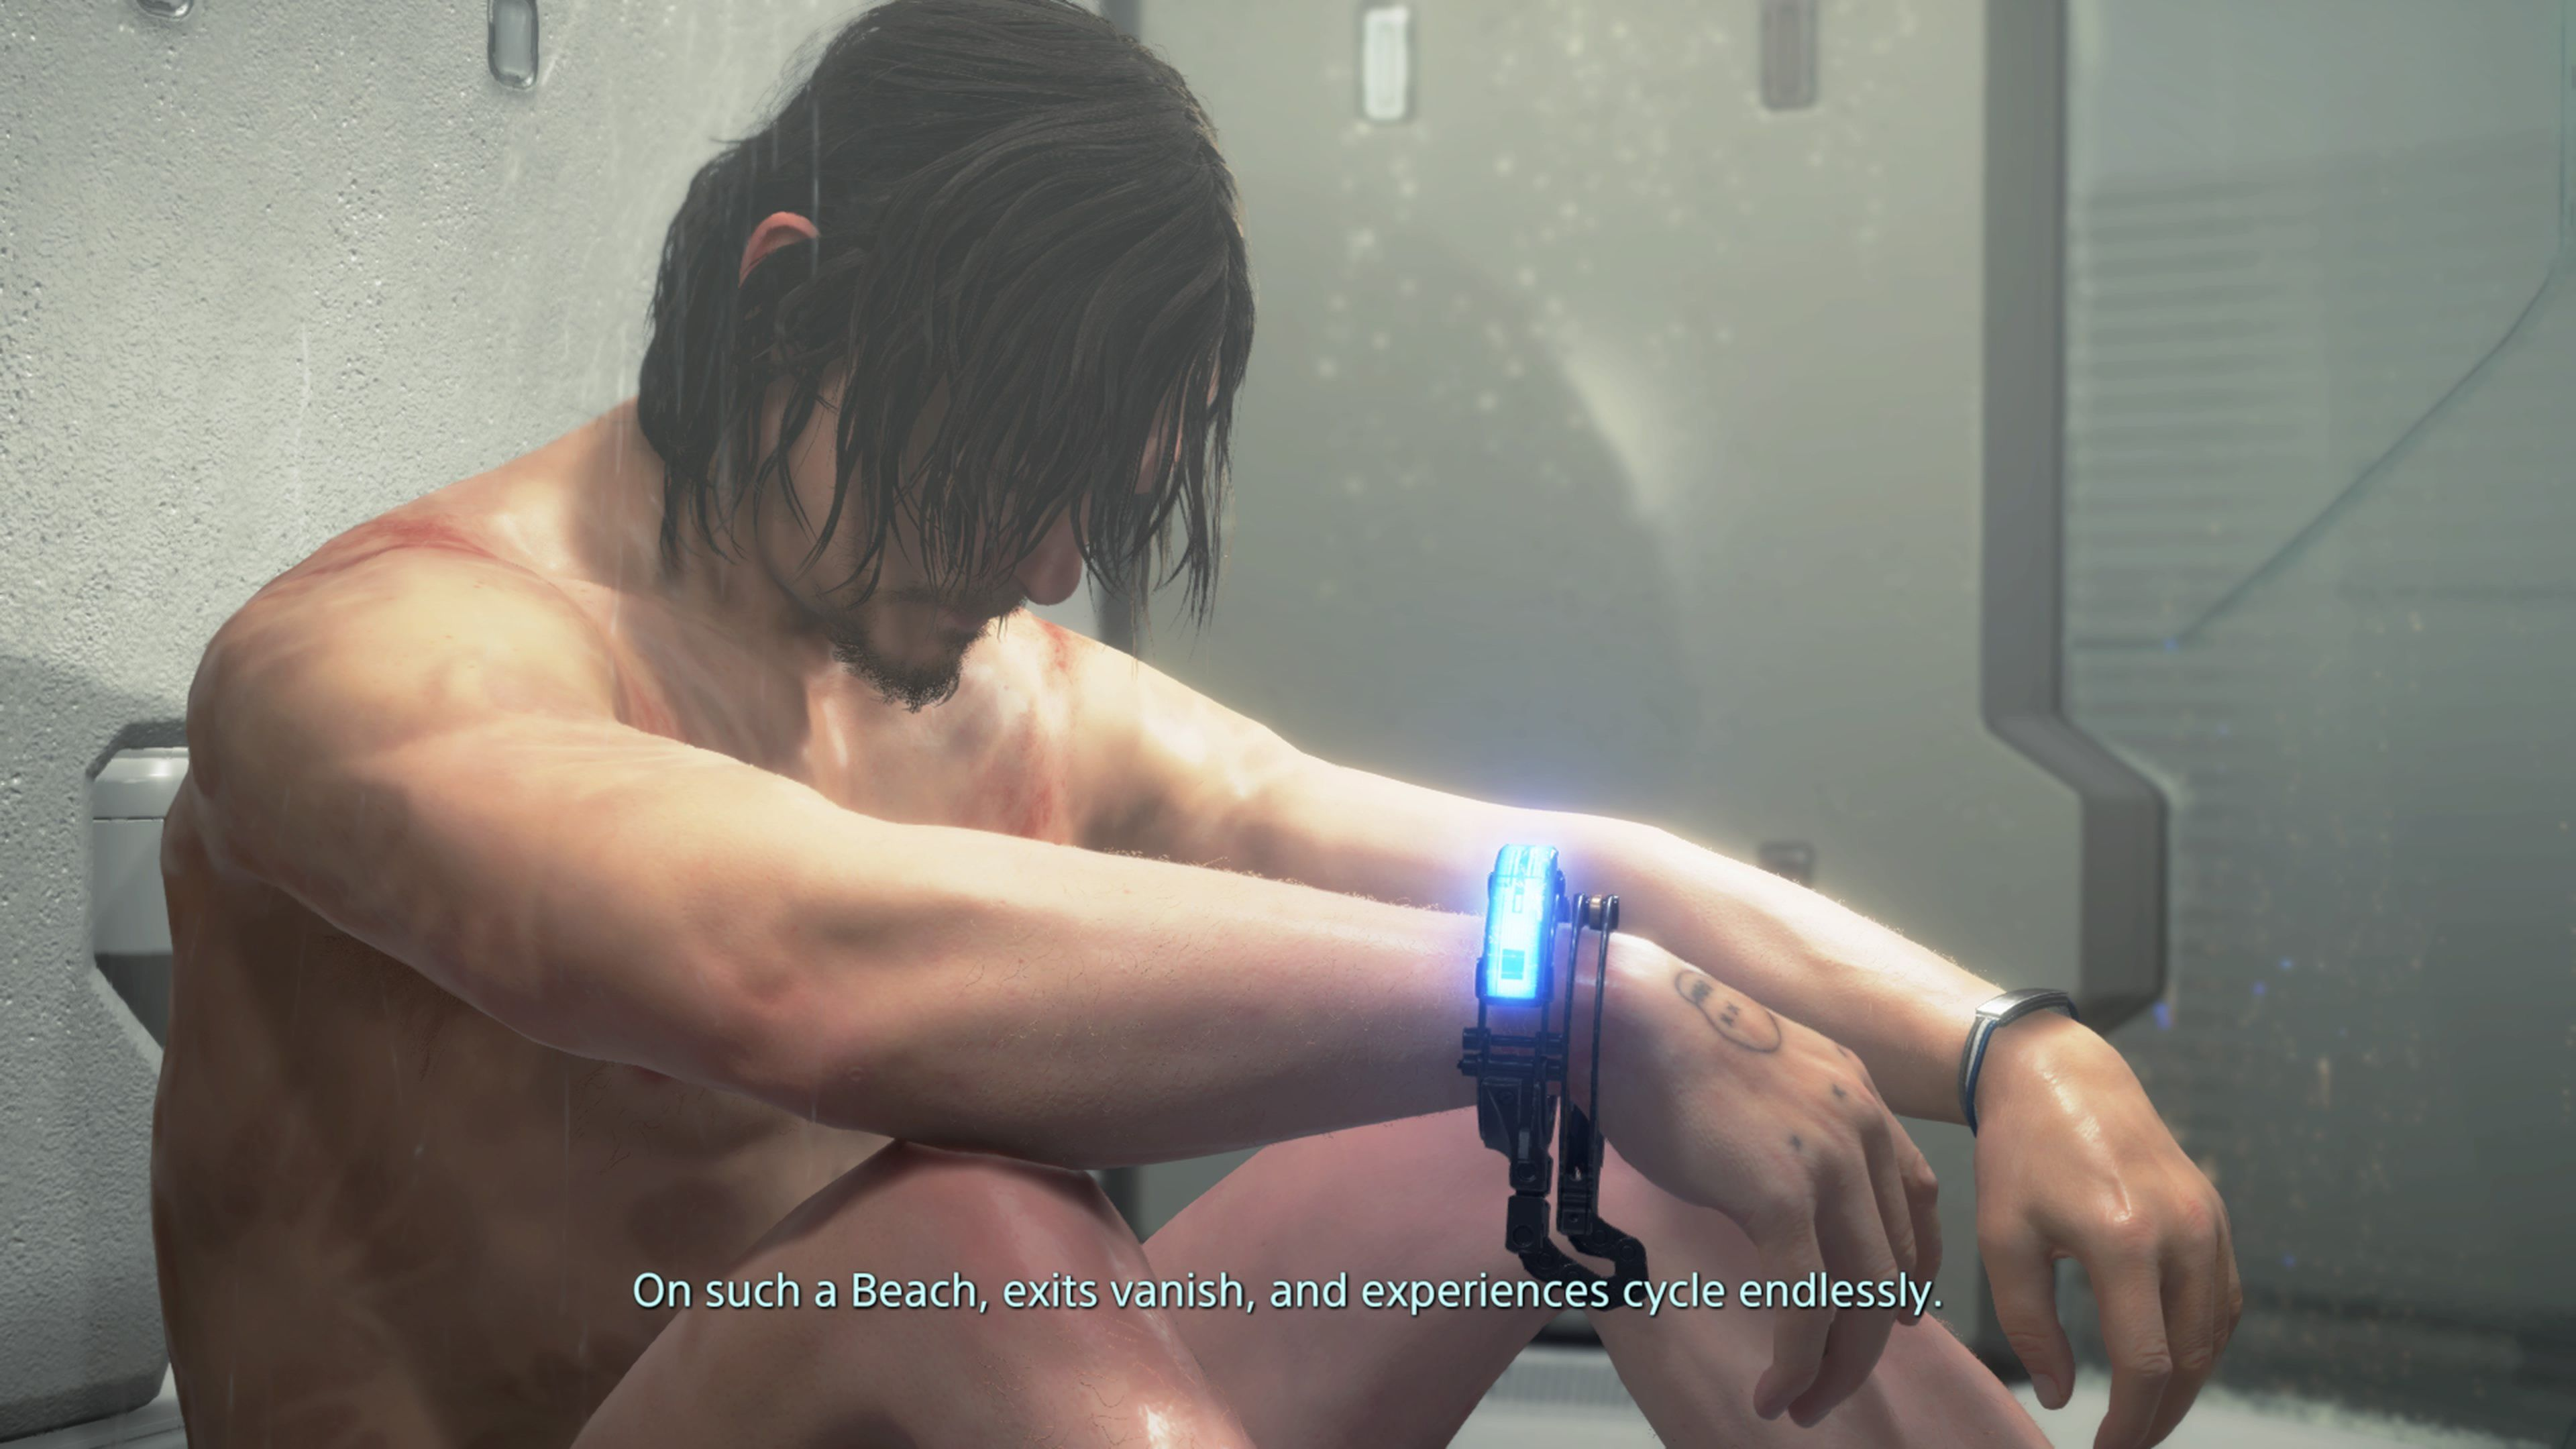 A screenshot of Sam Porter Bridges sitting down in the shower in Death Stranding. Over a speaker, someone says 'On such a beach, exits vanish, and experiences cycle endlessly'